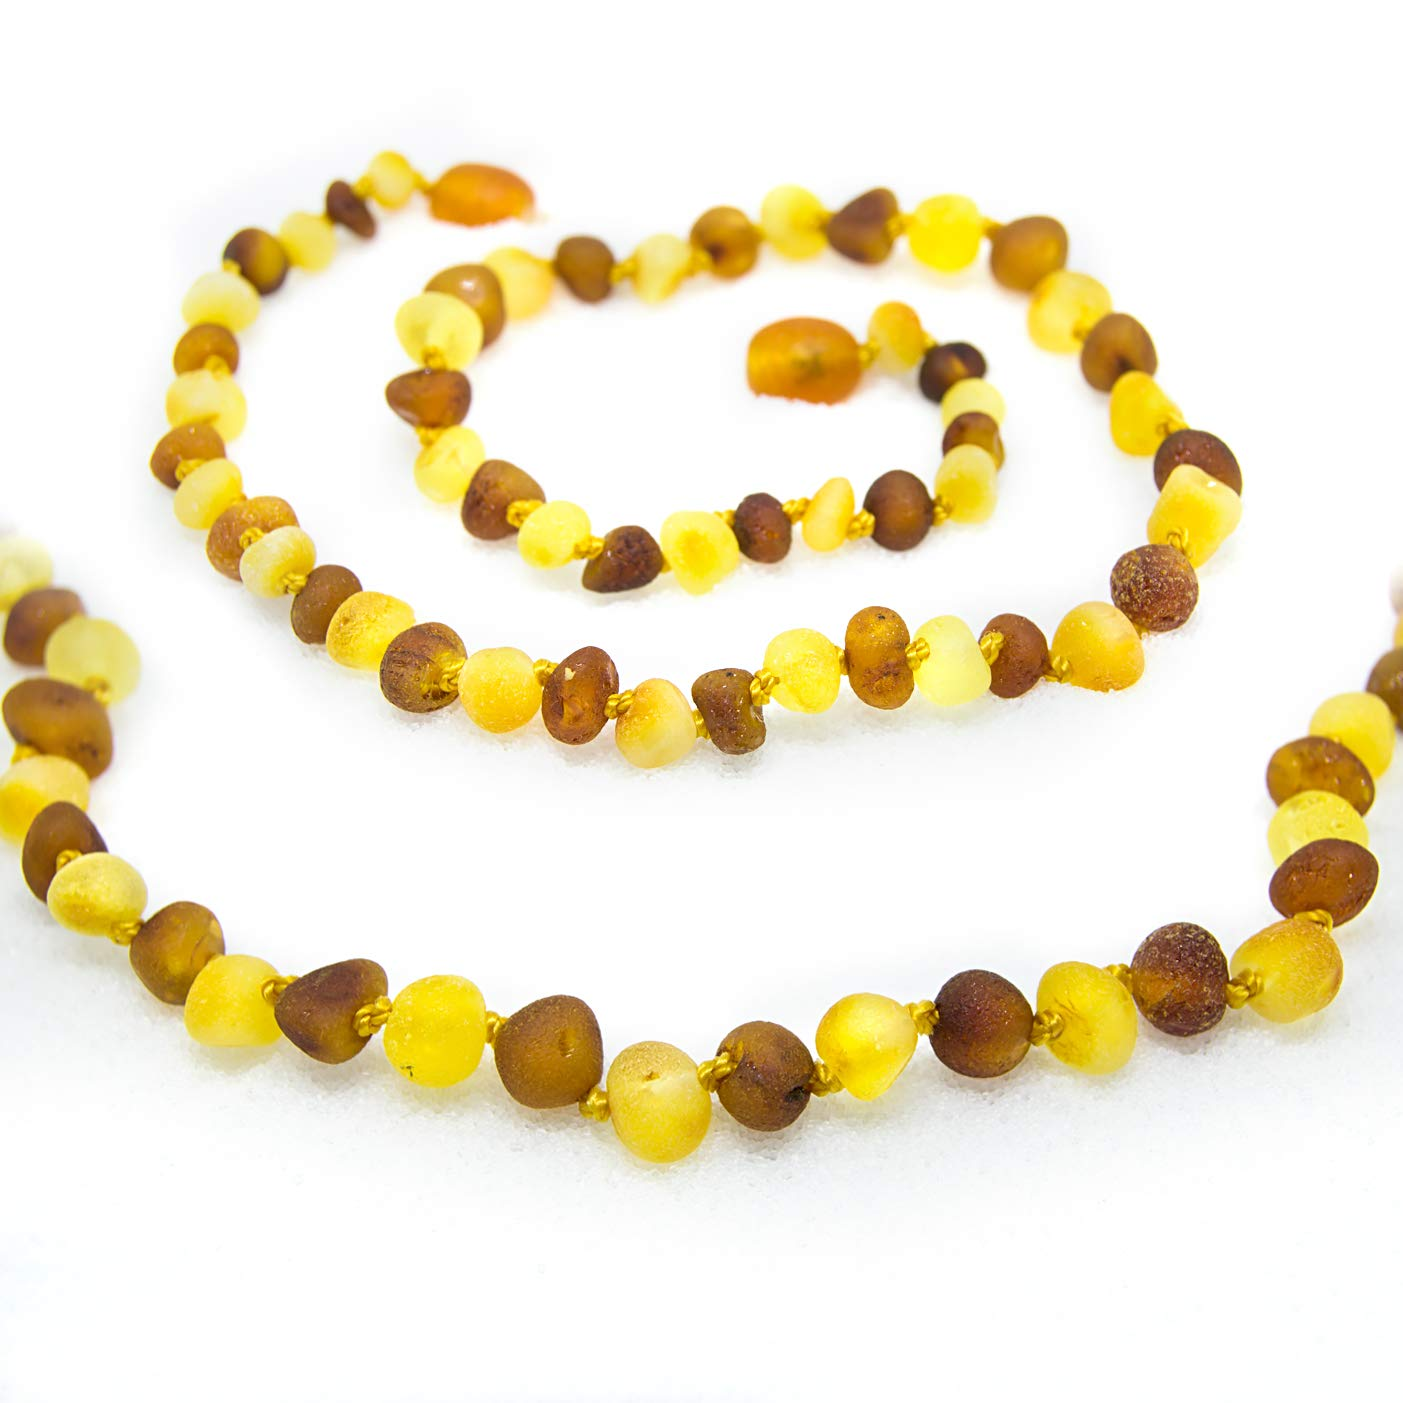 The Art of Cure Baltic Amber Necklace 17 Inch (raw 1x1) - Anti-inflammatory by The Art of Cure